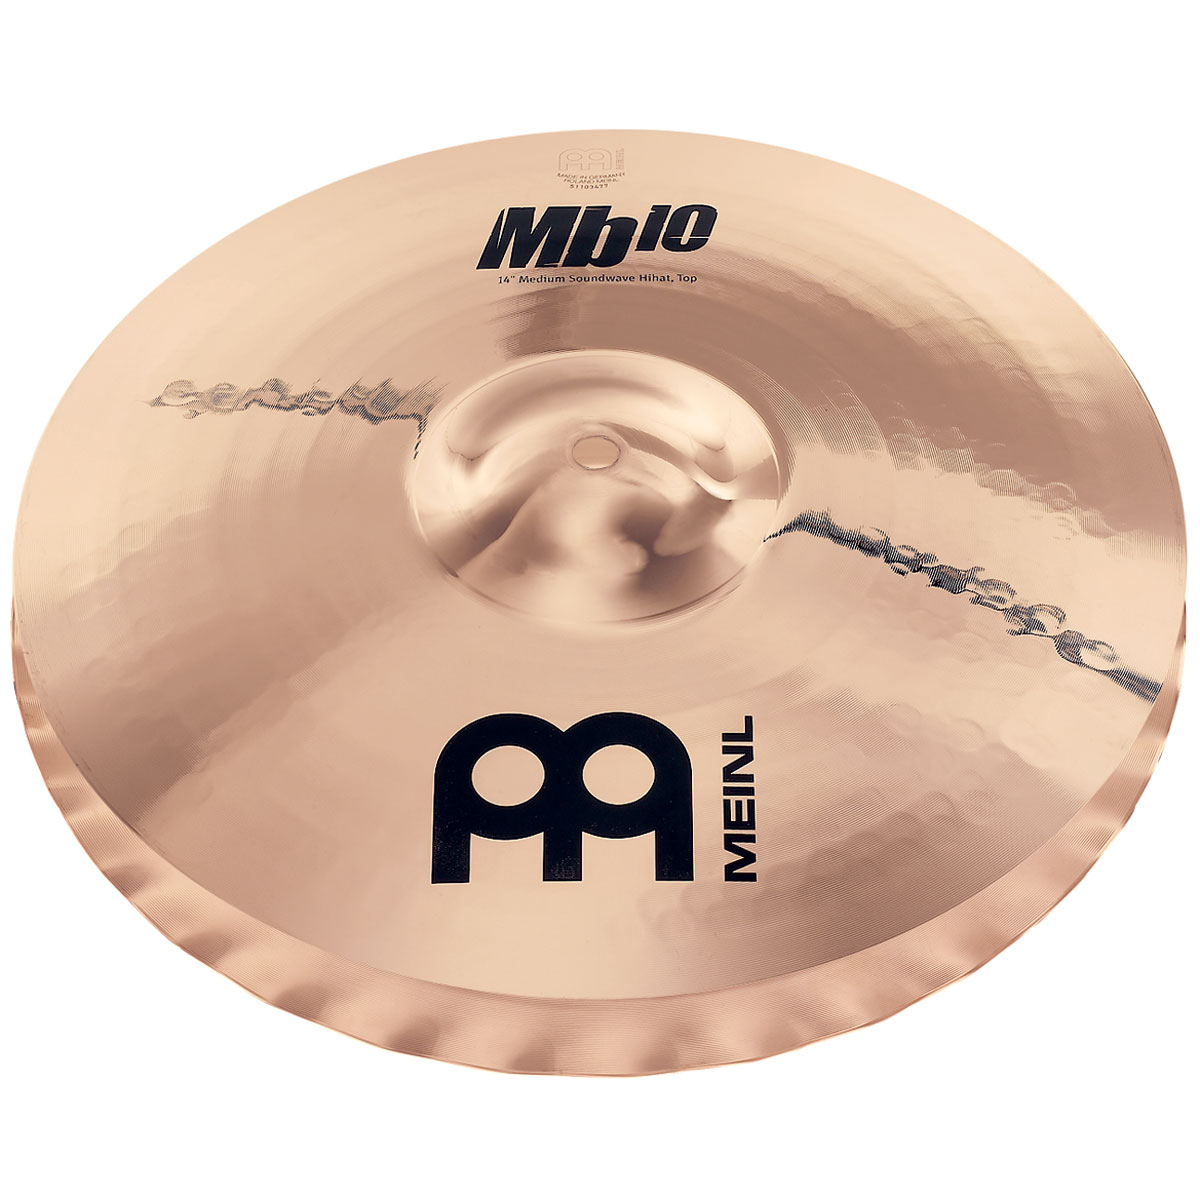 "Meinl 14"" Mb10 Medium Soundwave Hi Hat Cymbals"